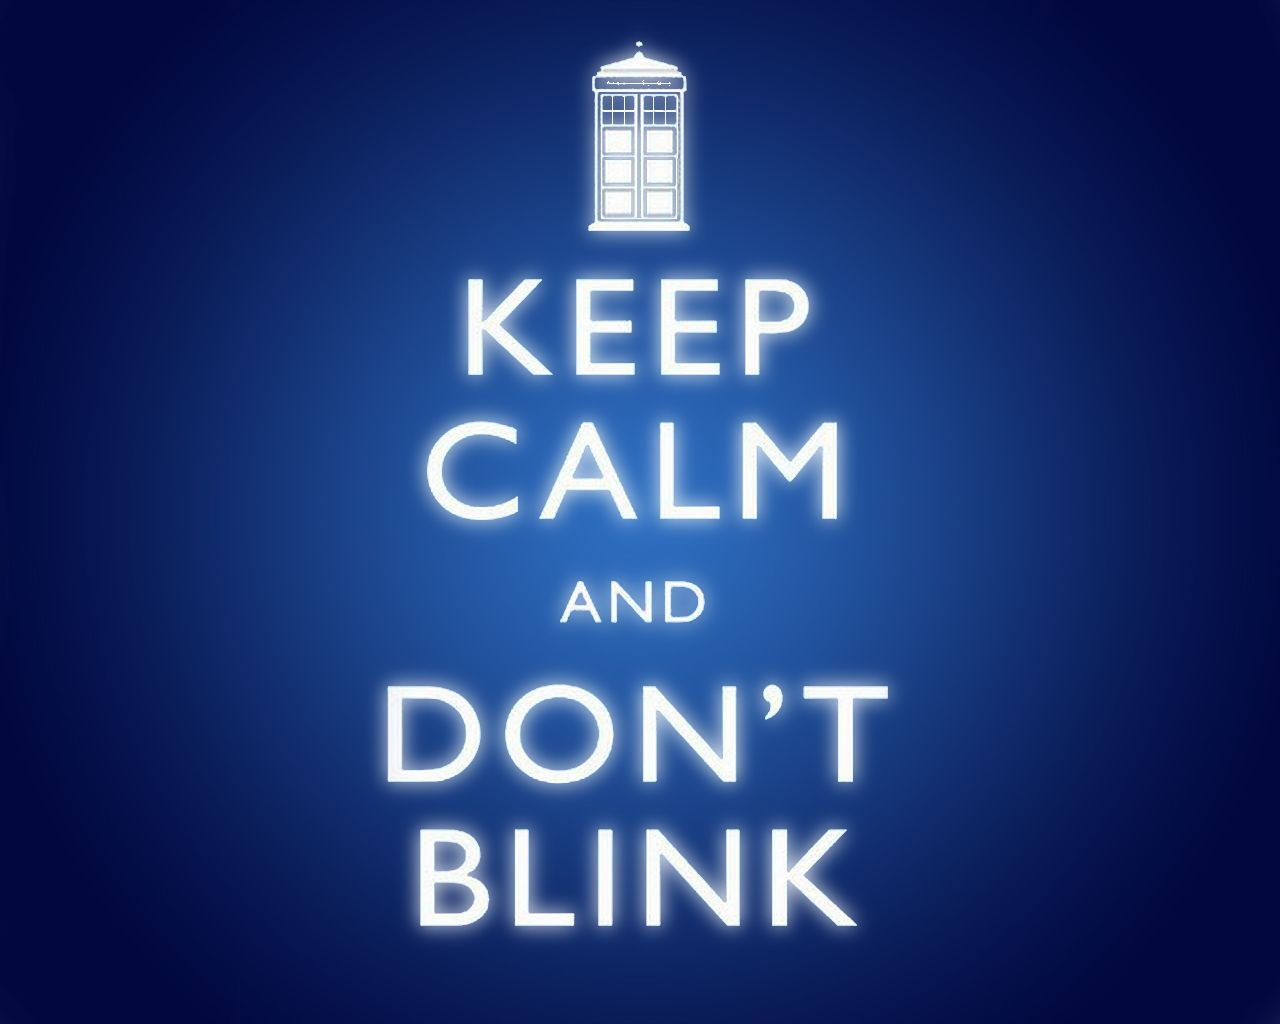 Doctor Who Wallpaper Keep Calm Doctor Who Funny Stuff